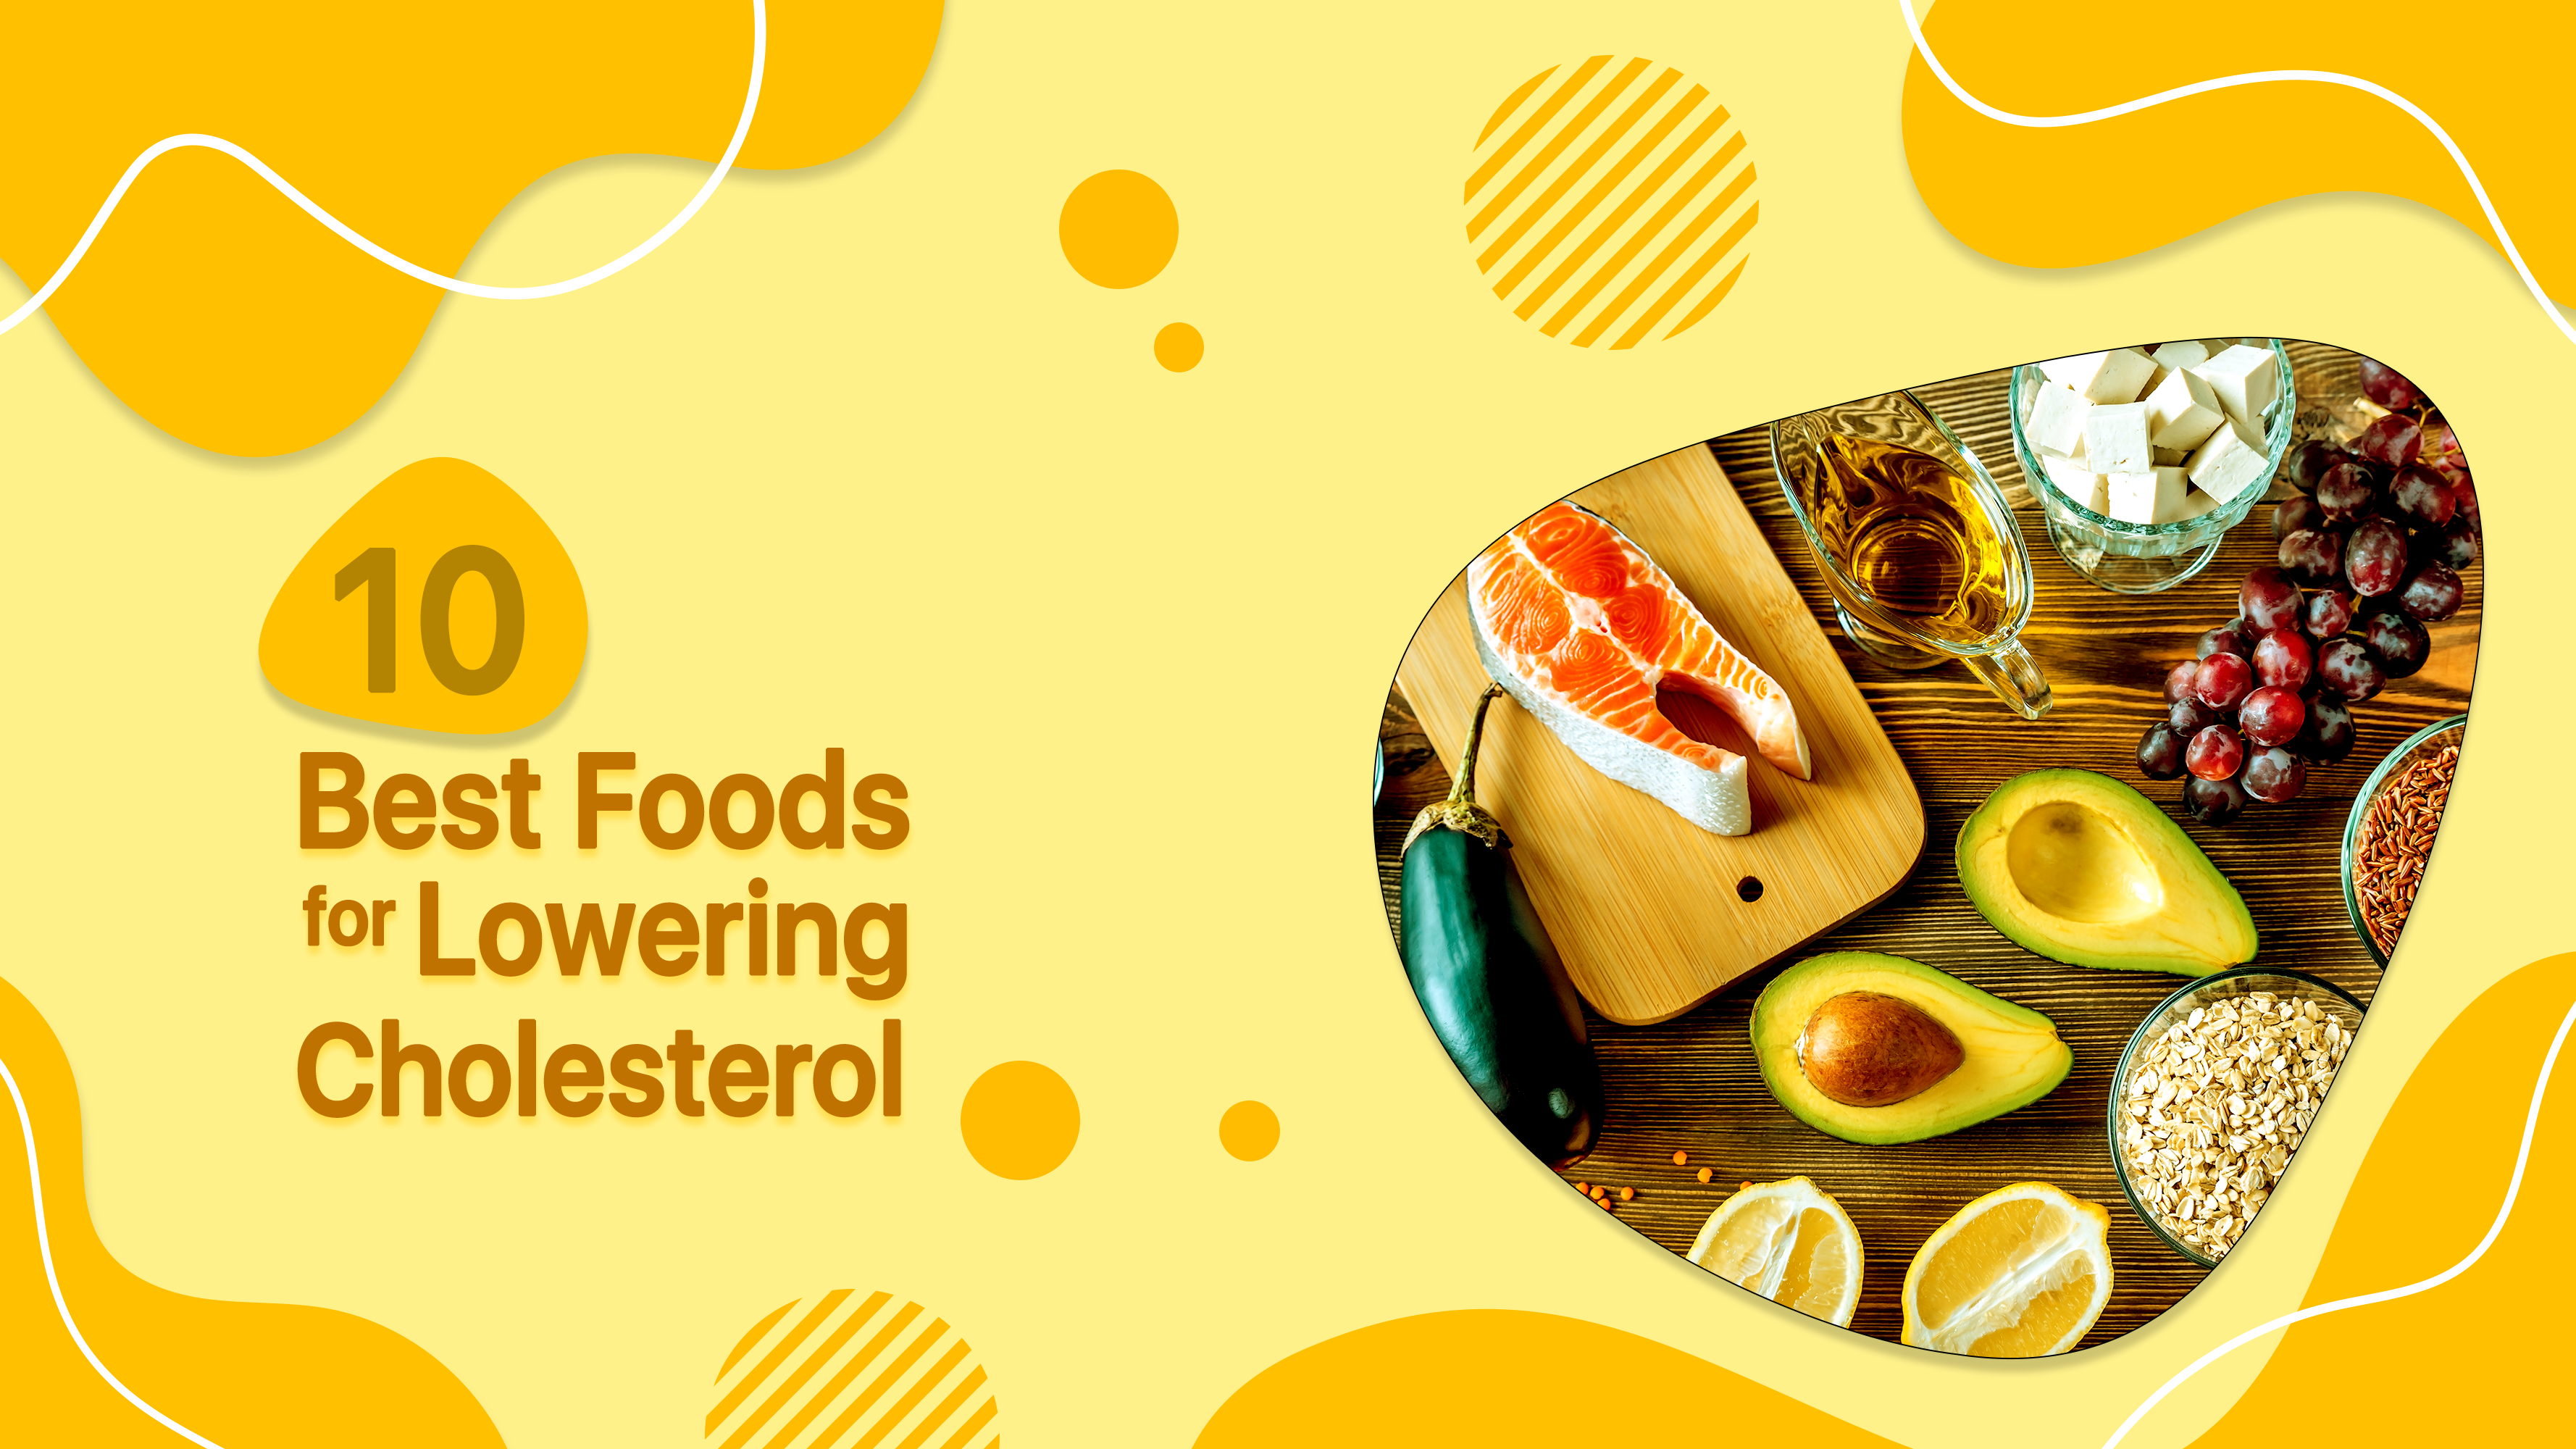 10 Best Food for Lowering Cholesterol